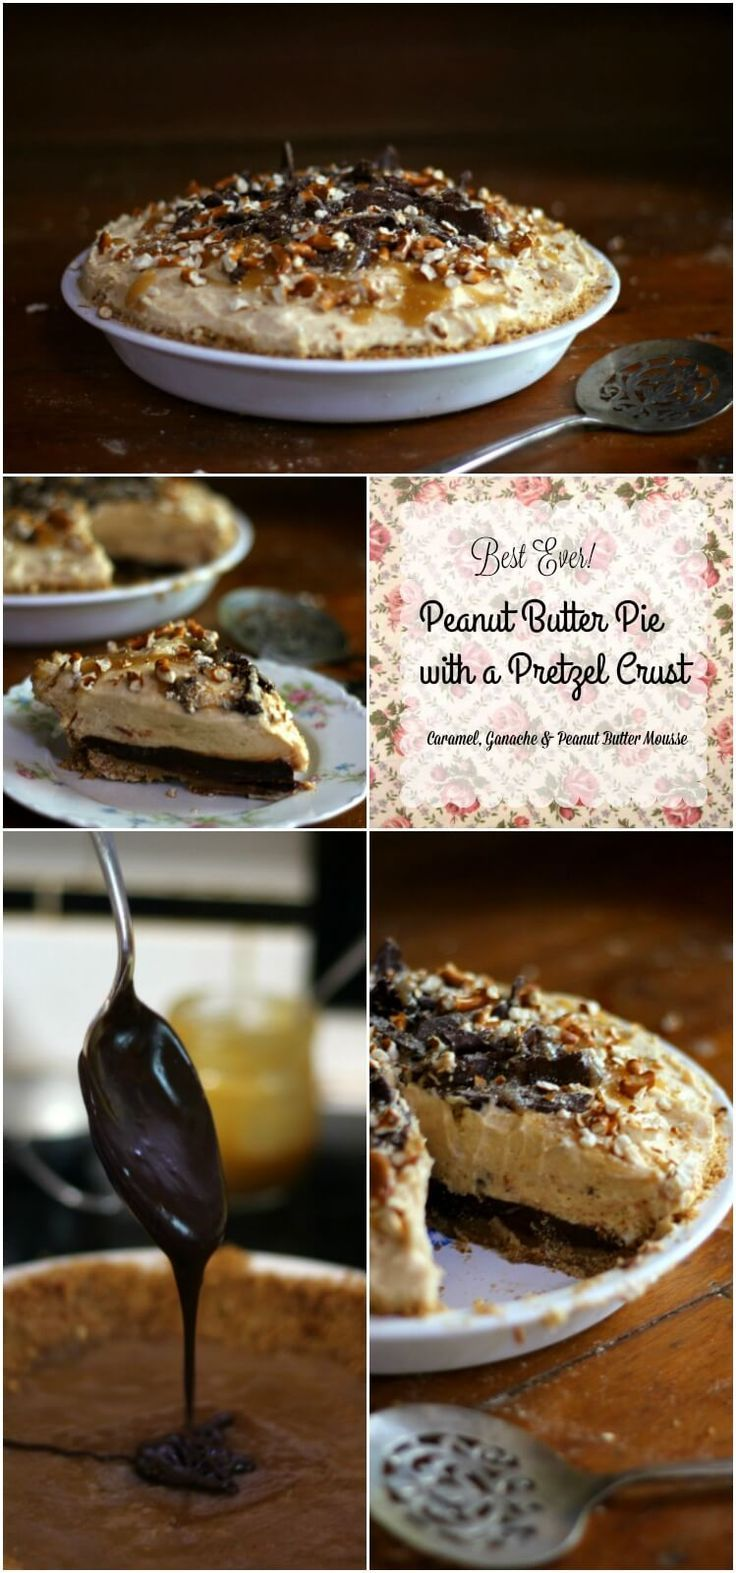 Creamy peanut butter mousse is swirled on top of layers of rich ganache and…